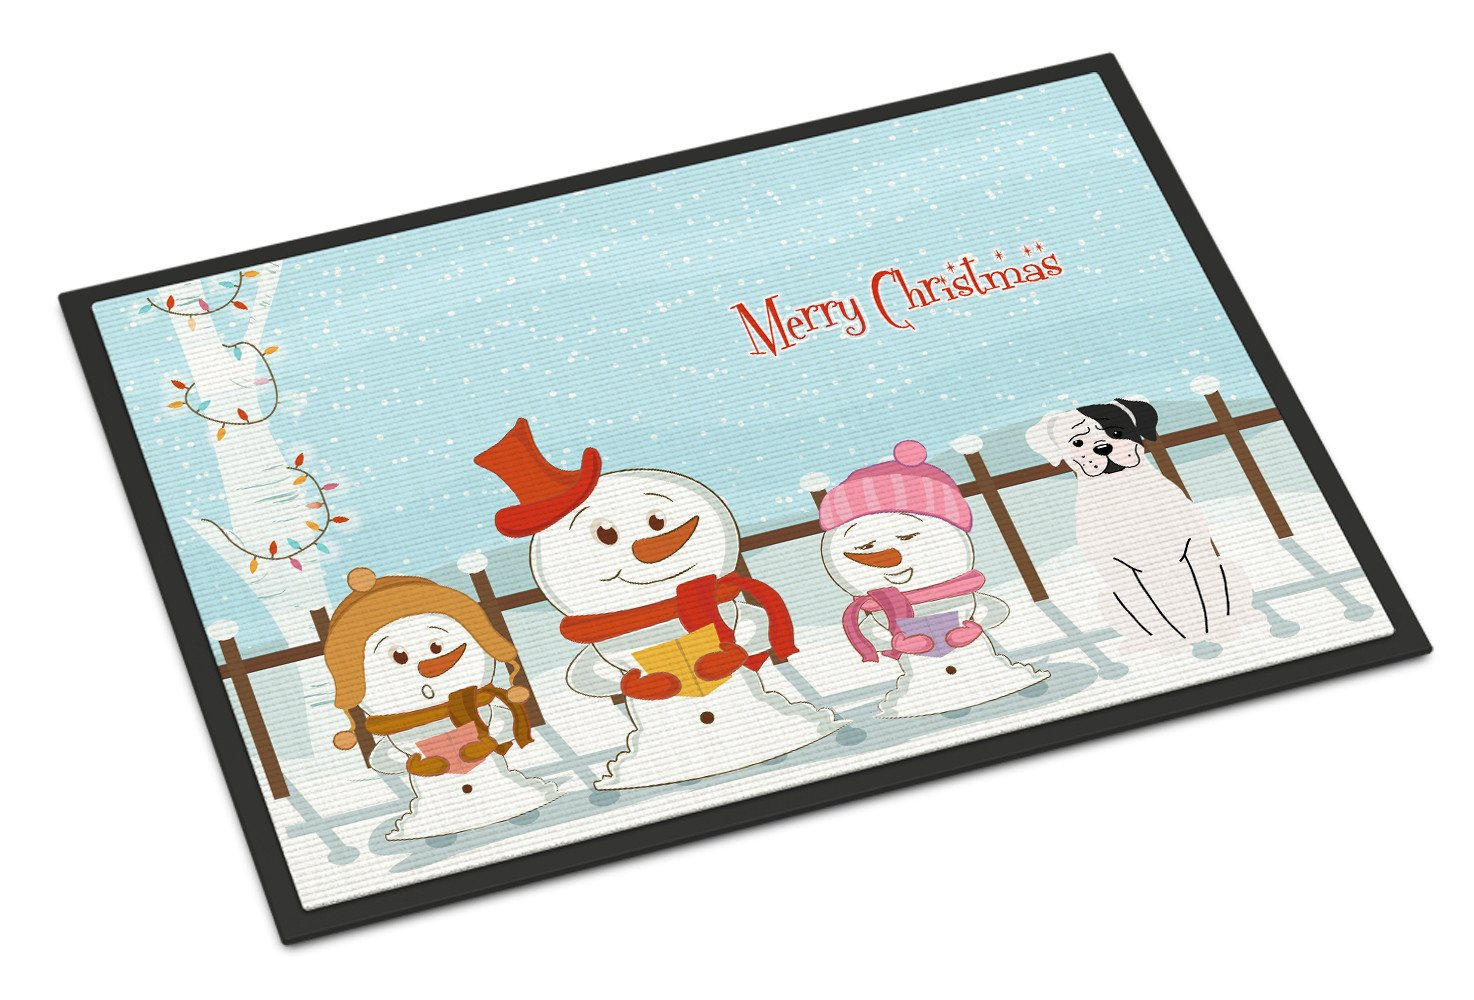 Merry Christmas Carolers White Boxer Cooper Indoor or Outdoor Mat 24x36 BB2445JMAT by Caroline's Treasures